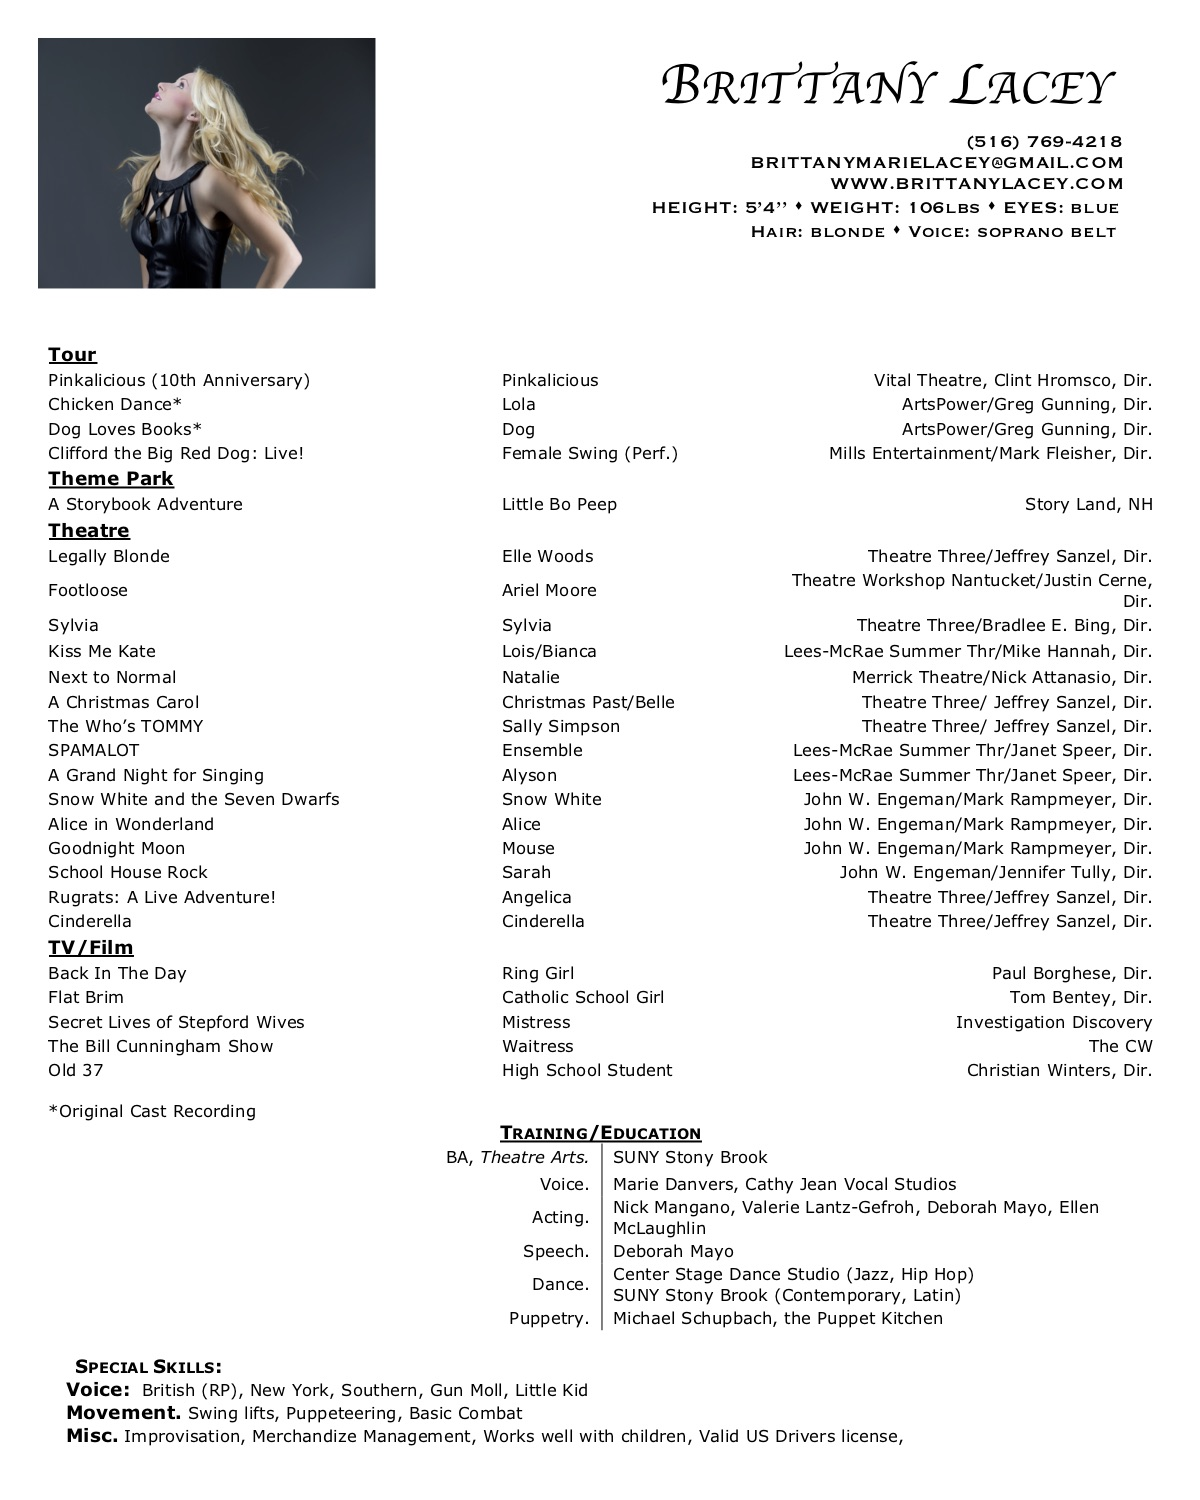 _Brittany Lacey Resume 3 copy.jpg